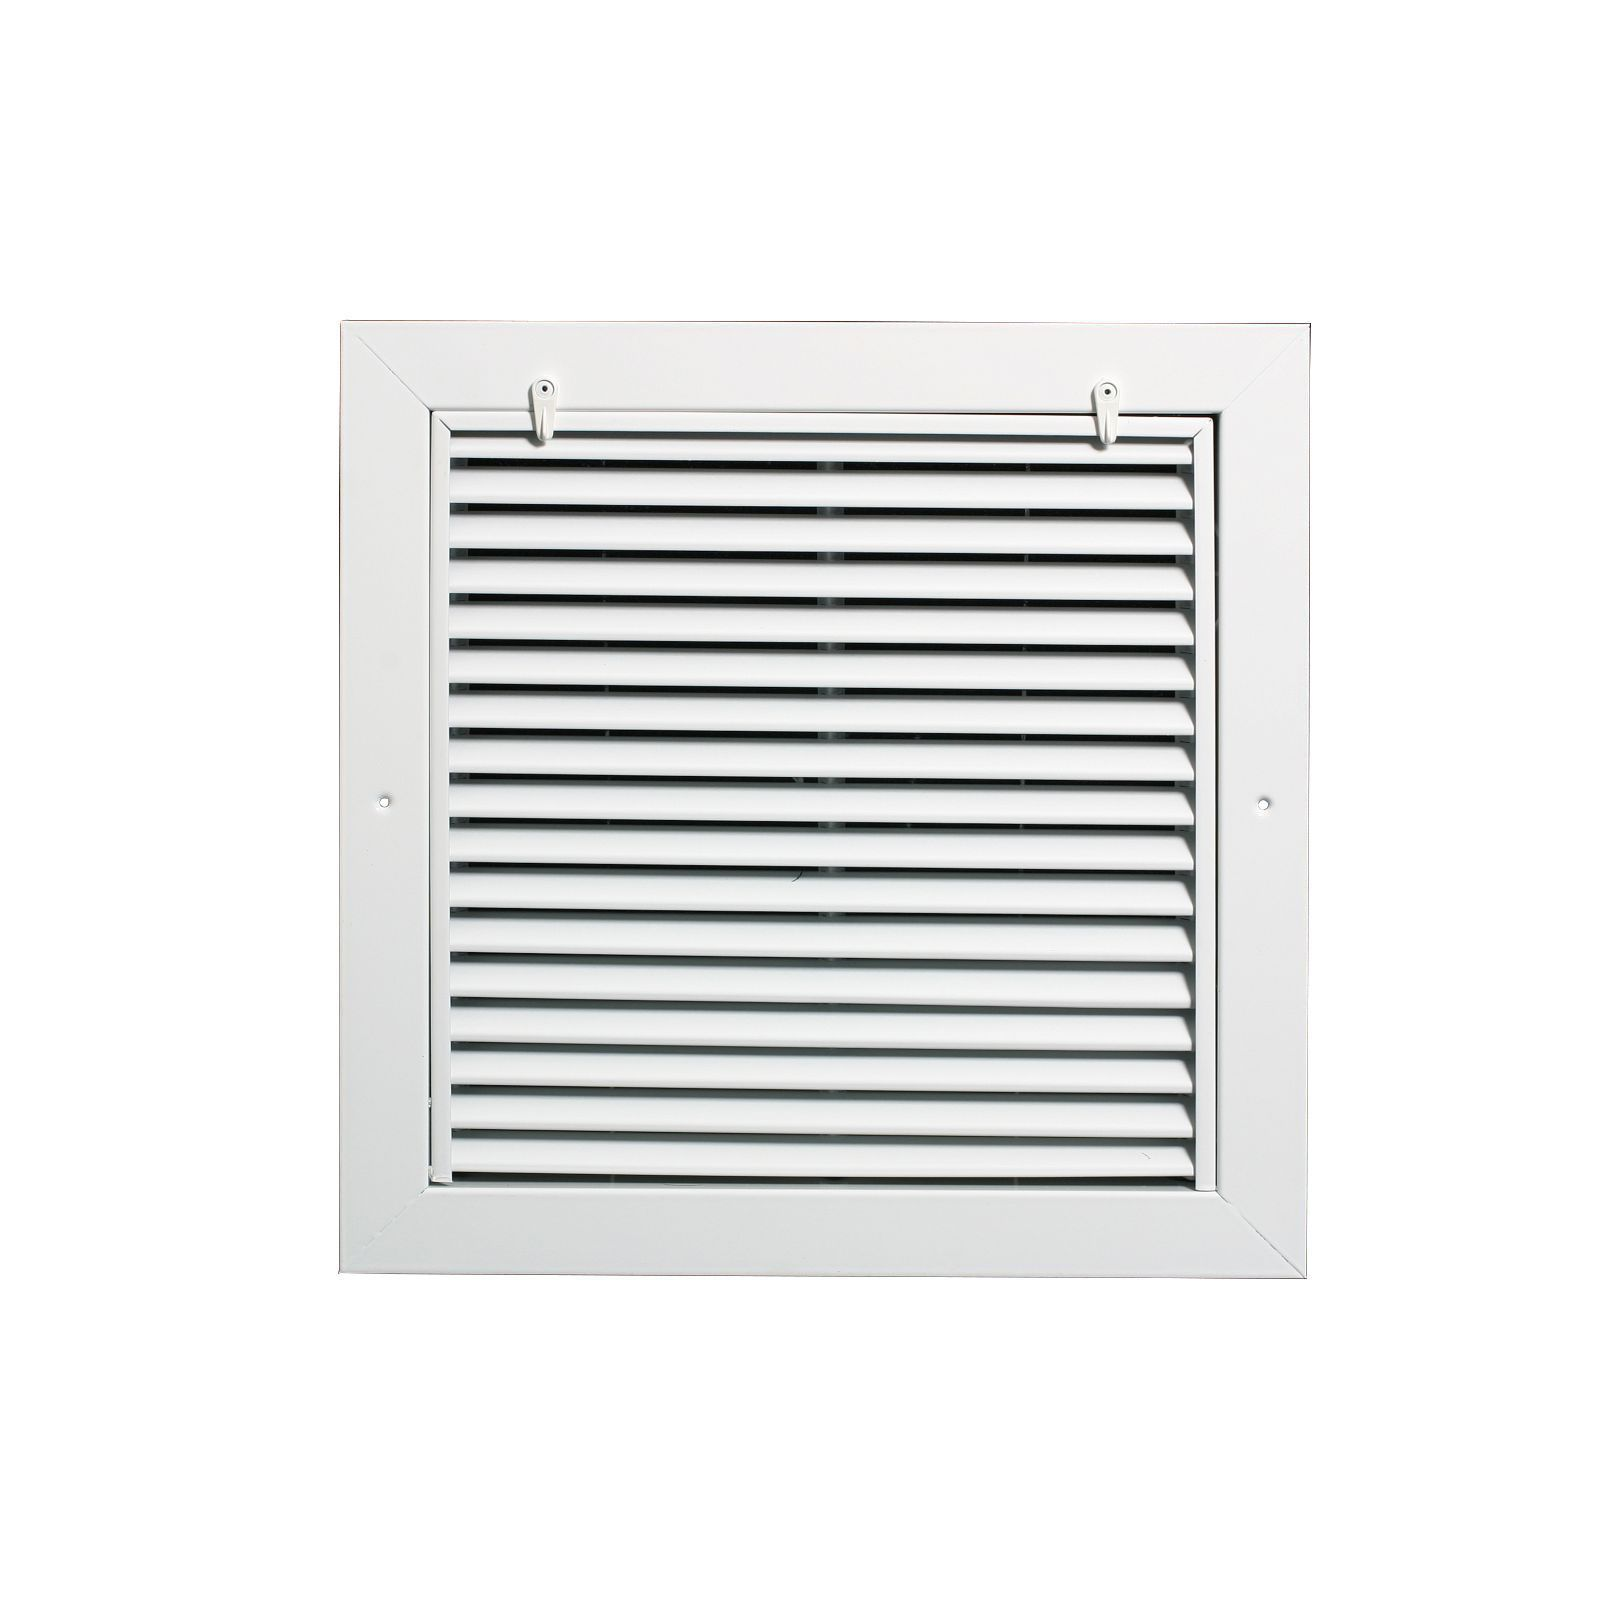 "Grille Tech RAFGS1006 - Aluminum Return Air Filter Grille, Grille Size 10"" X 6"" White"